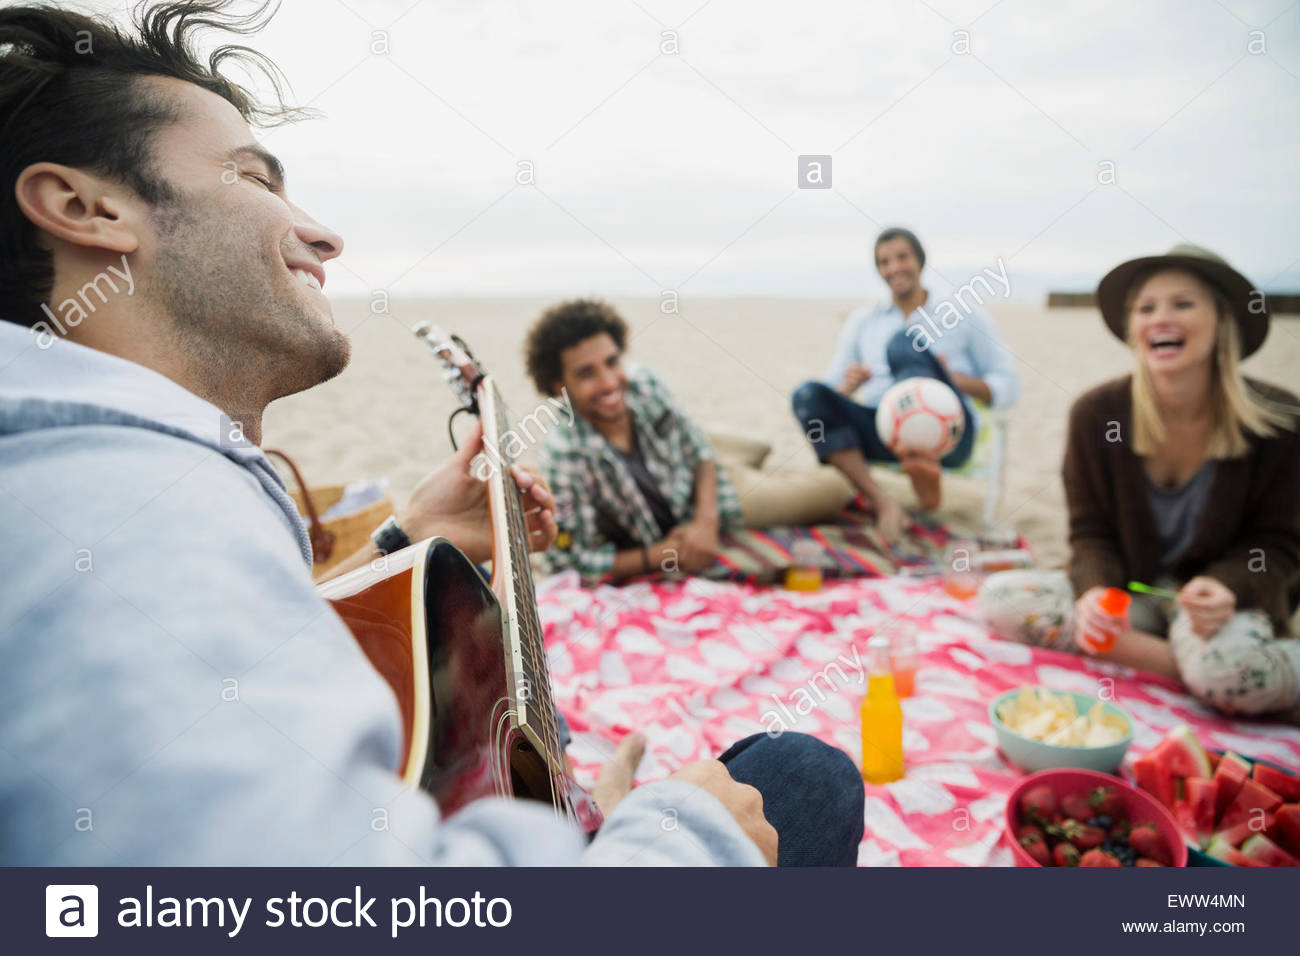 Friends hanging out playing guitar picnicking on beach Stock Photo